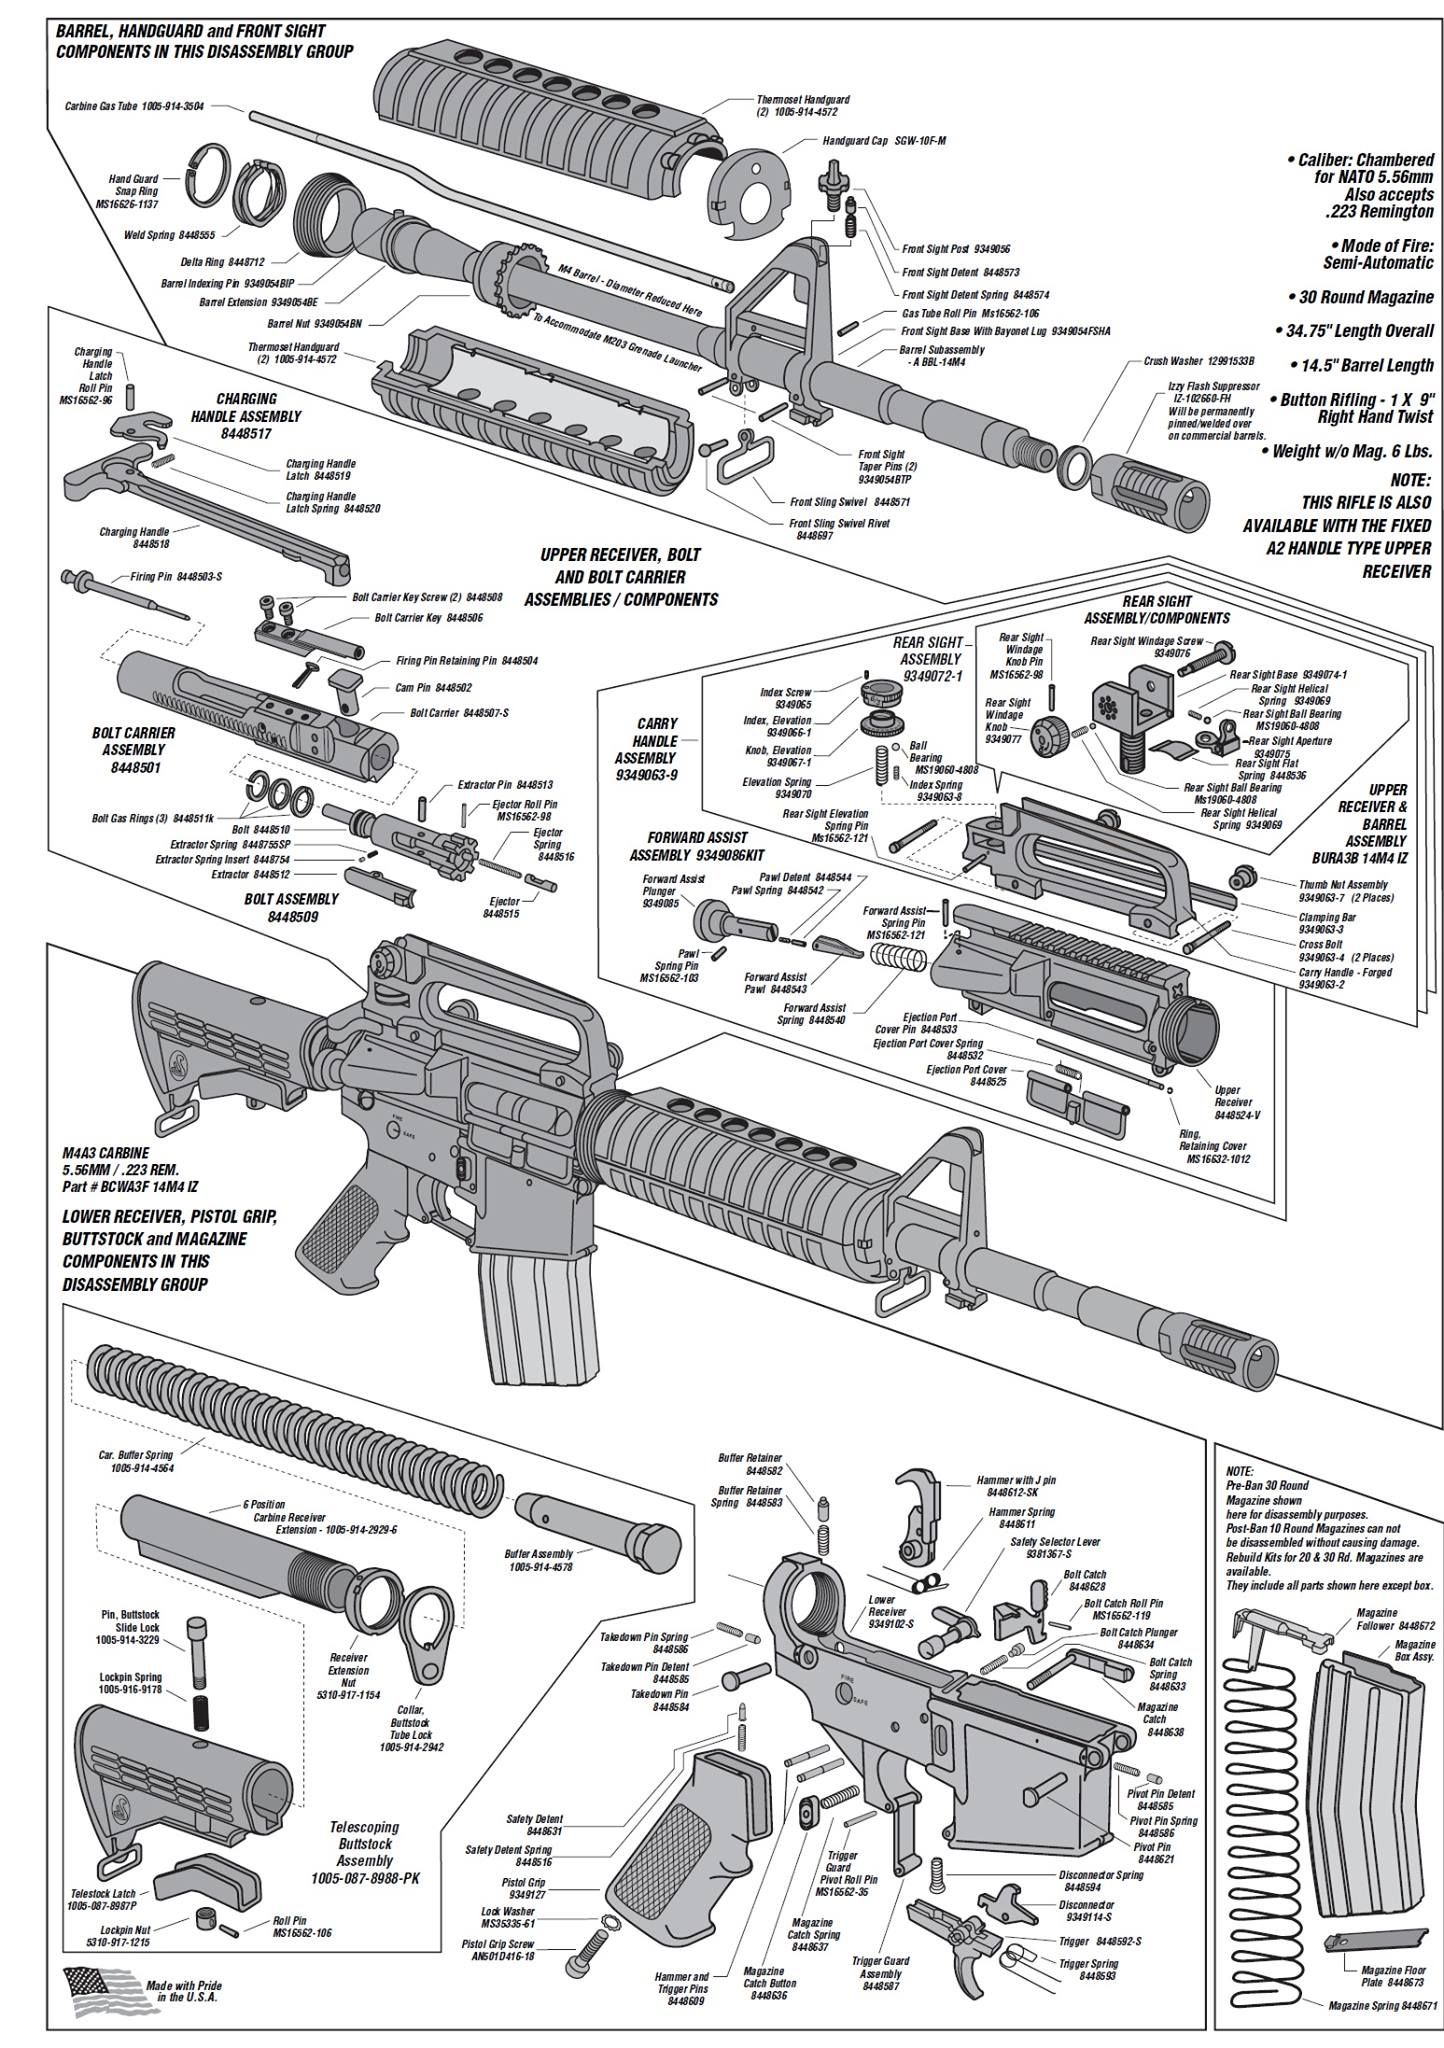 ak 47 receiver parts diagram rb25 neo tps wiring breakdown ar 15 tactical rifles guns firearms